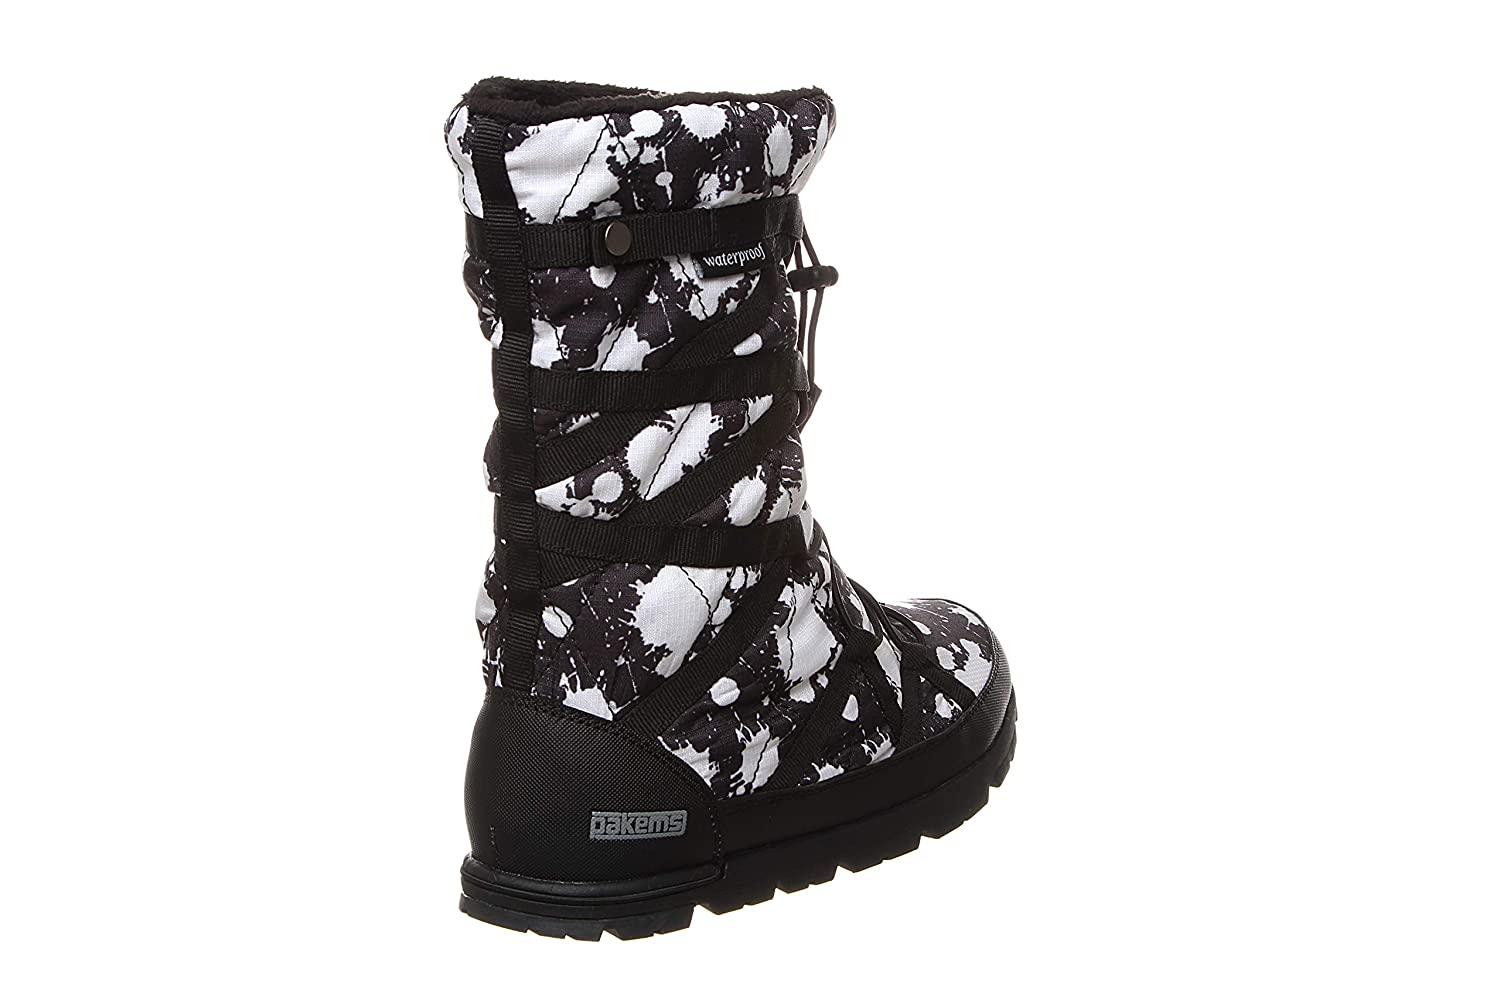 Waterproof Sizes 11-5 Pakems Cortina Paint Splash Girl/'s Lightweight Mid-Calf High Packable Fashionable After Sport and Travel Boot Customizable with Fun Arts and Crafts Colored Marker Pack